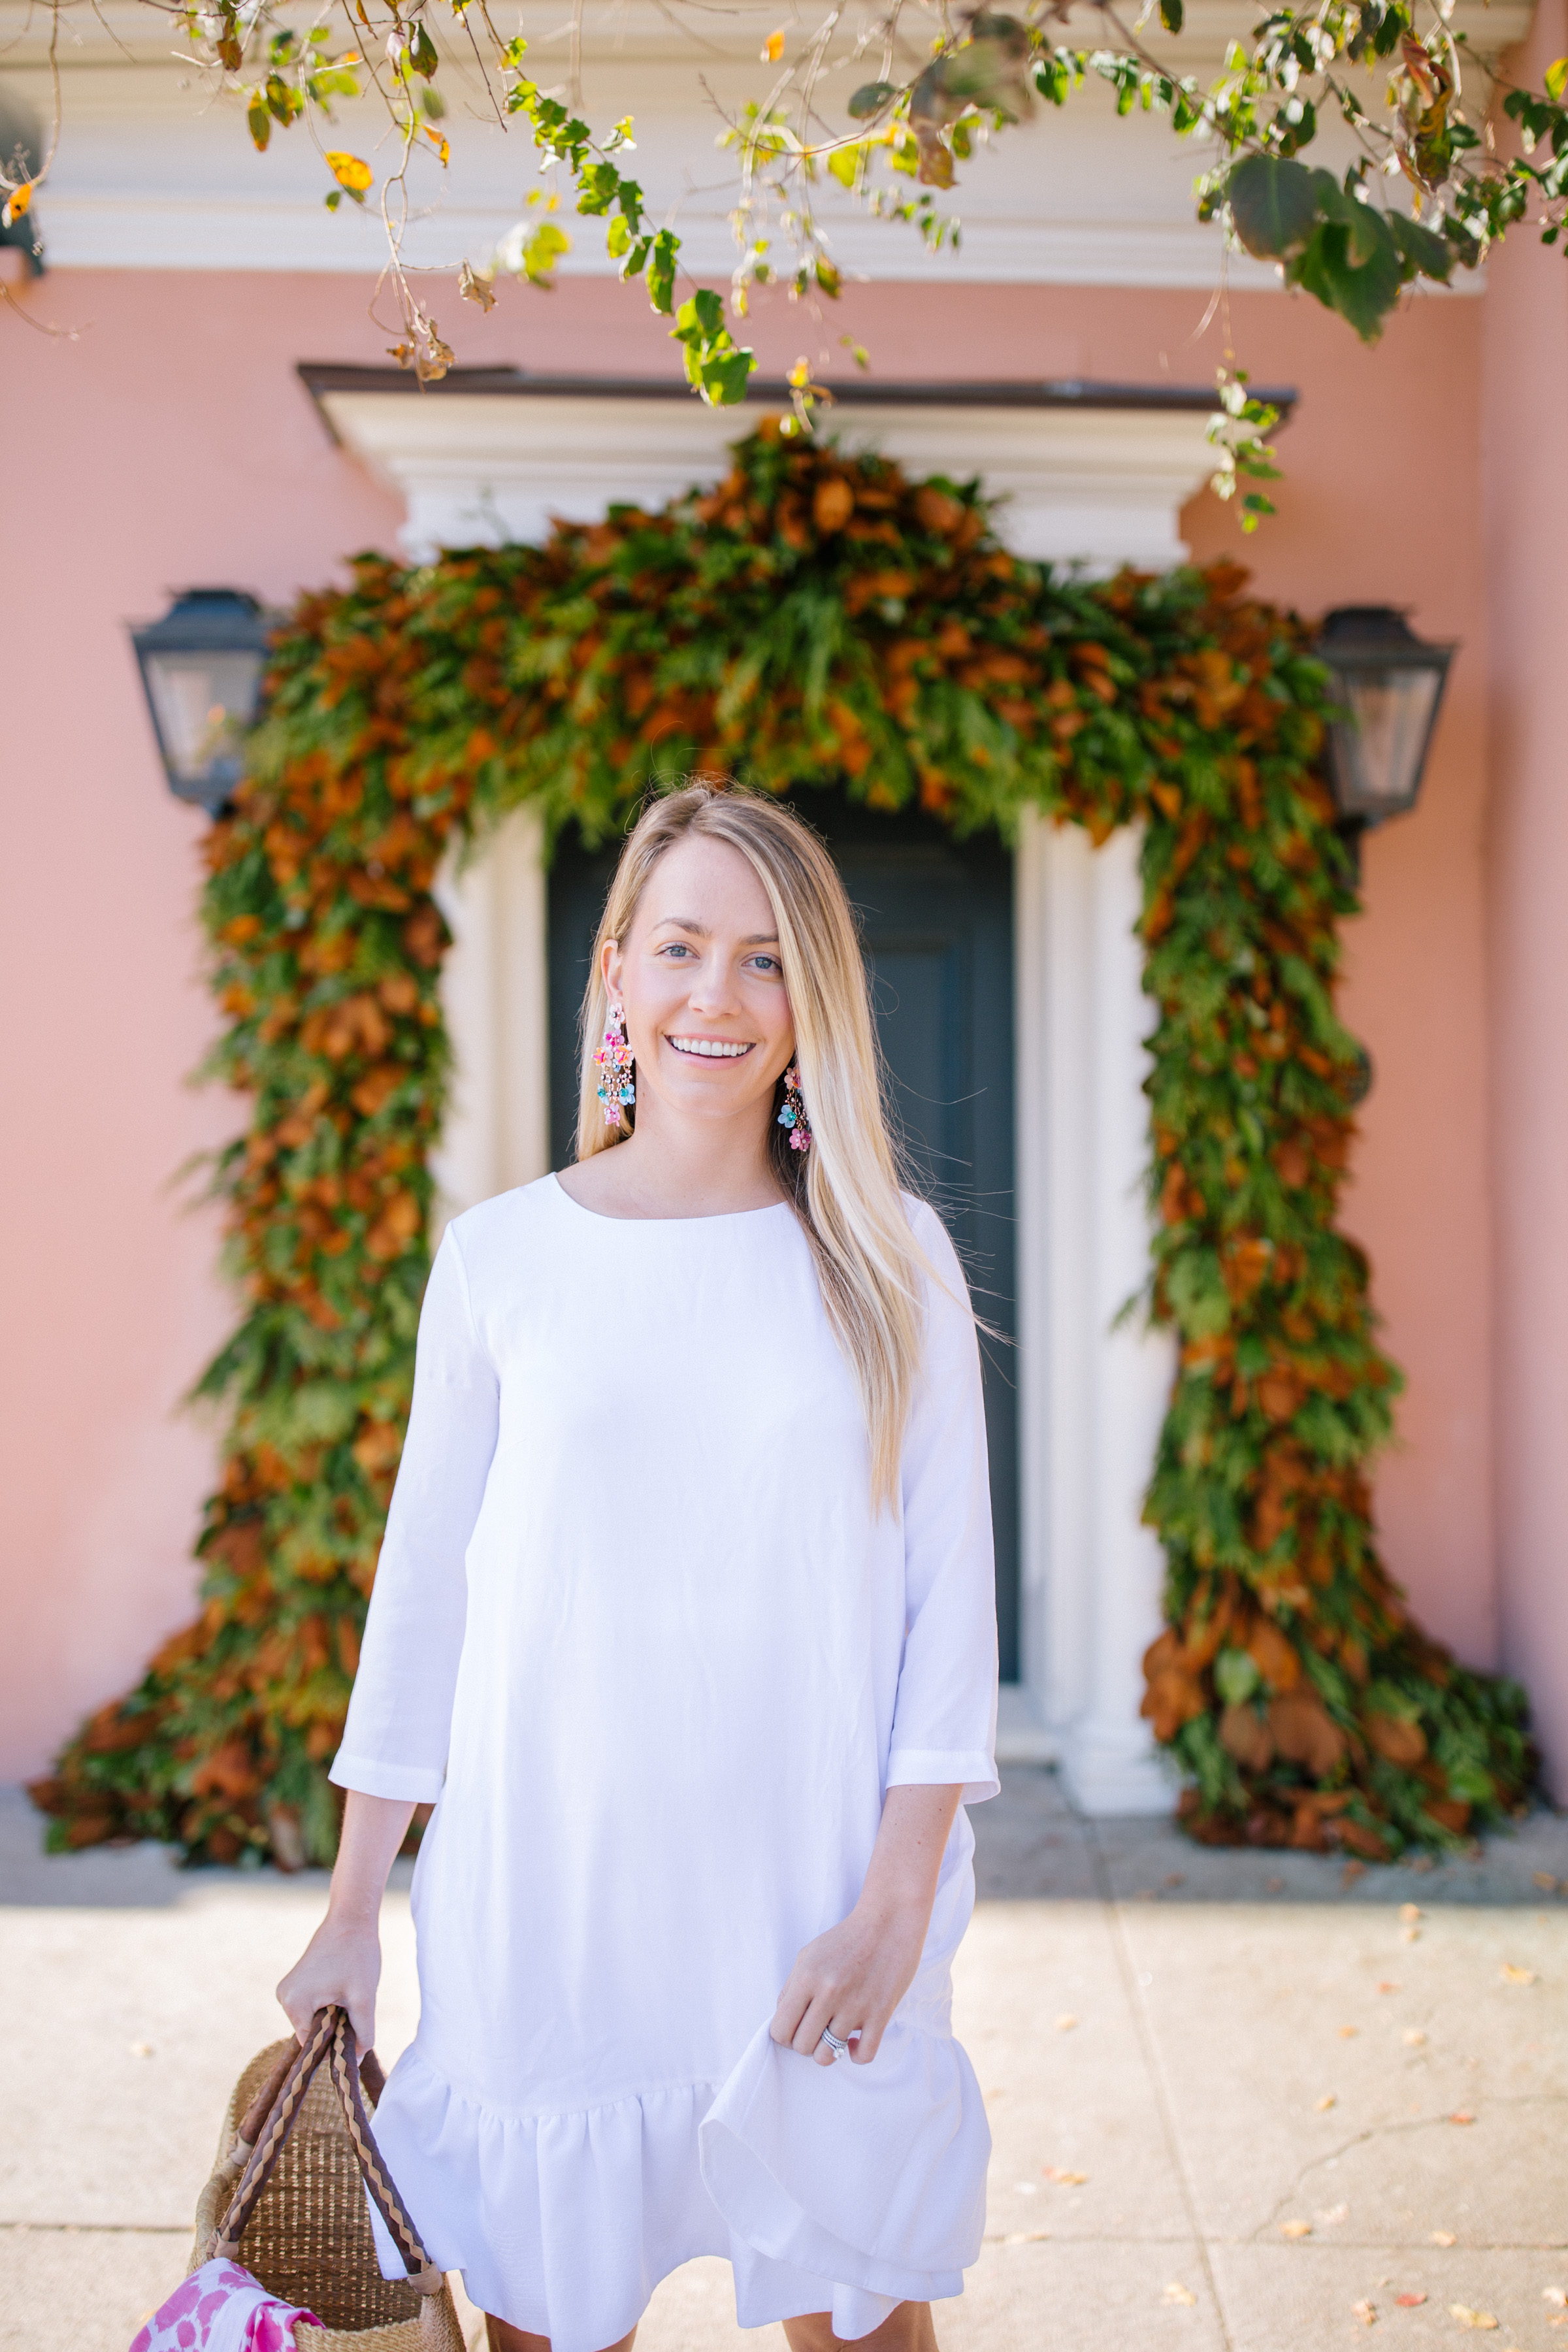 Jillian Attaway Eversole shares her favorite winter white Persifor dress + what she'd wear on a winter beach vacation | Rhyme & Reason